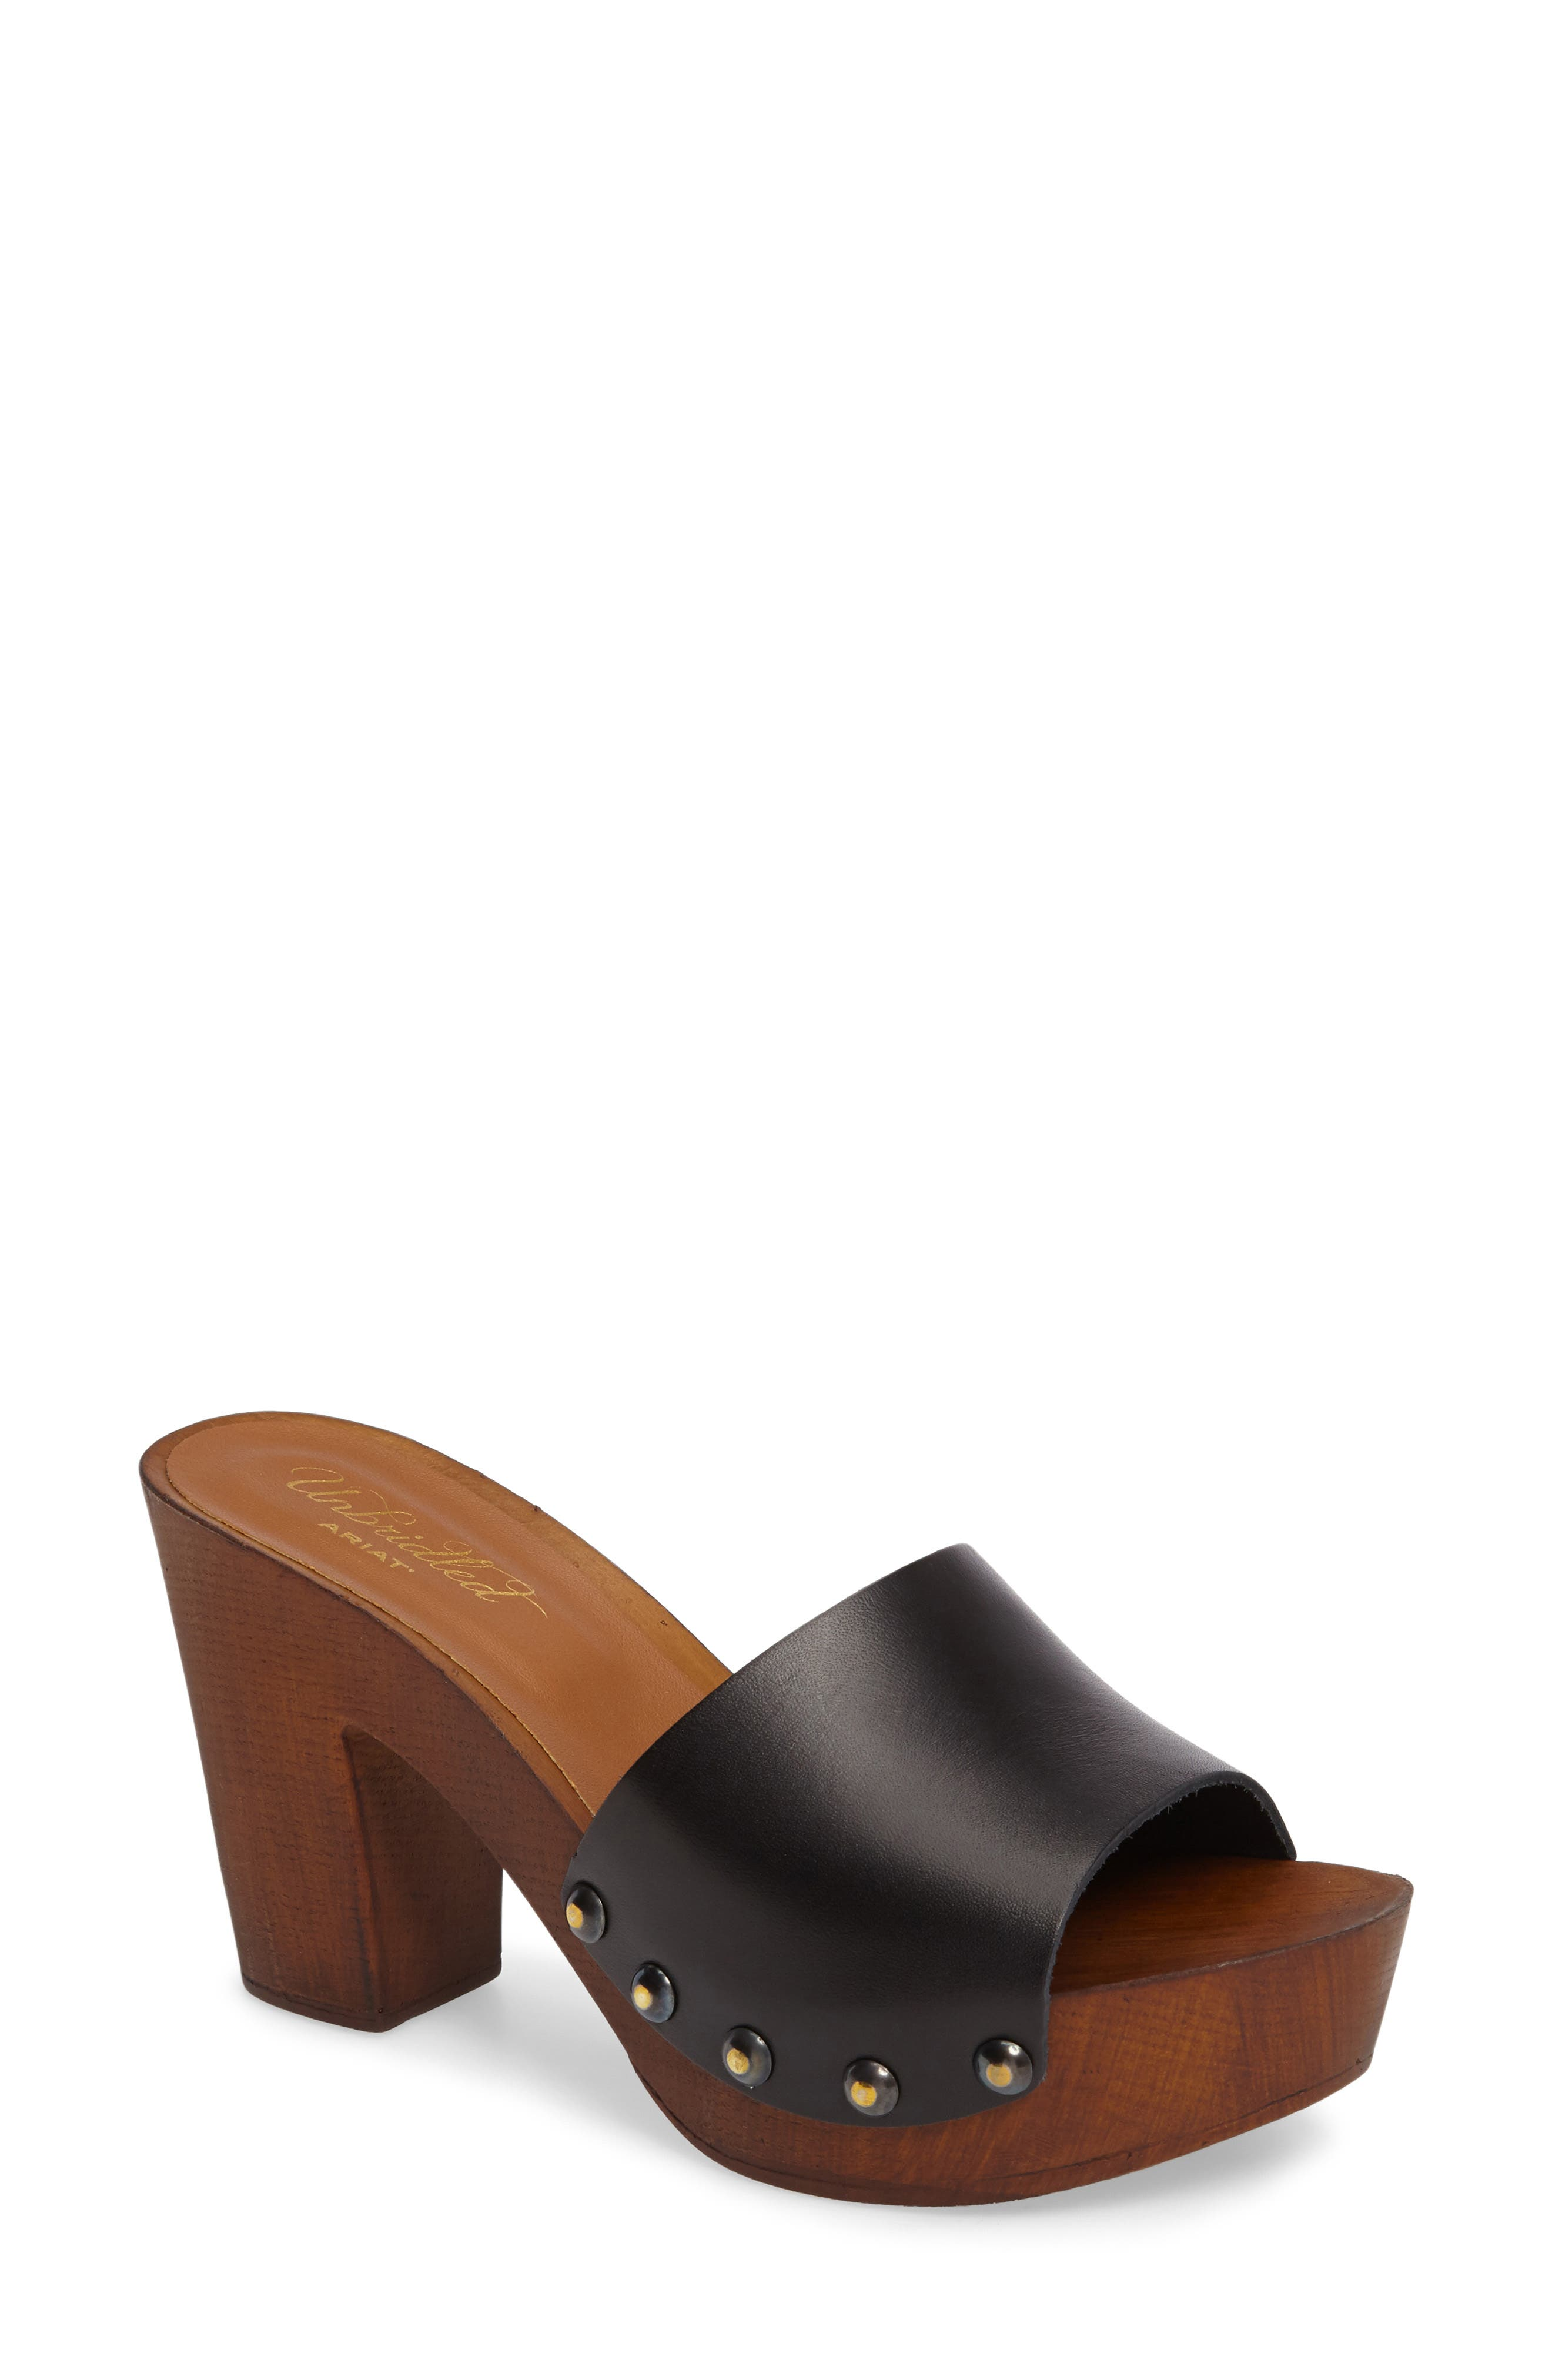 ARIAT Unbridled Lennon Mule in Black Leather